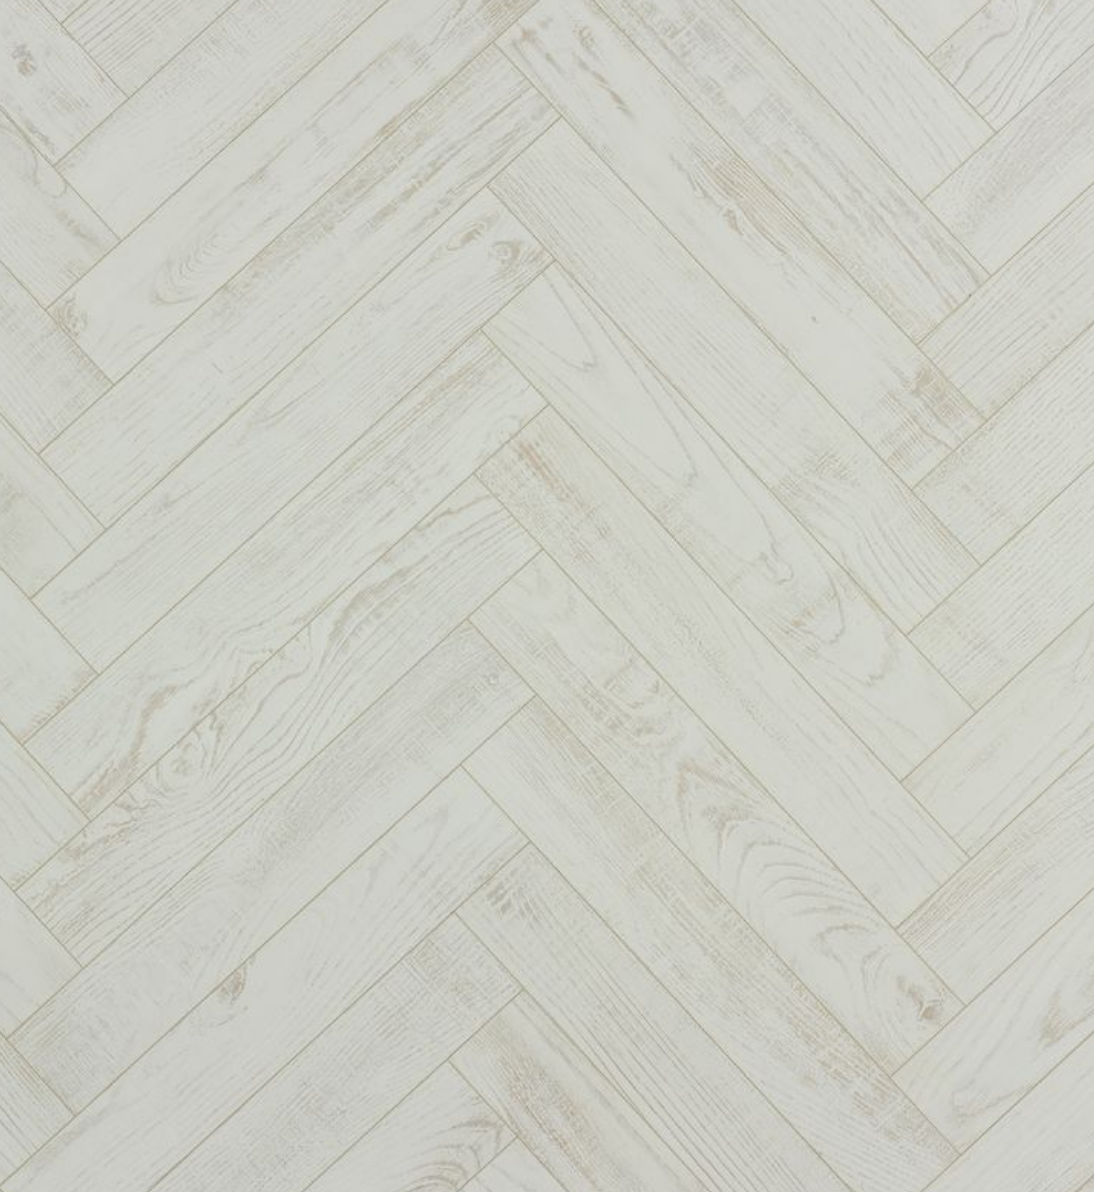 Berry Alloc Chateau White Chesnut Parquet Herringbone Laminate Flooring